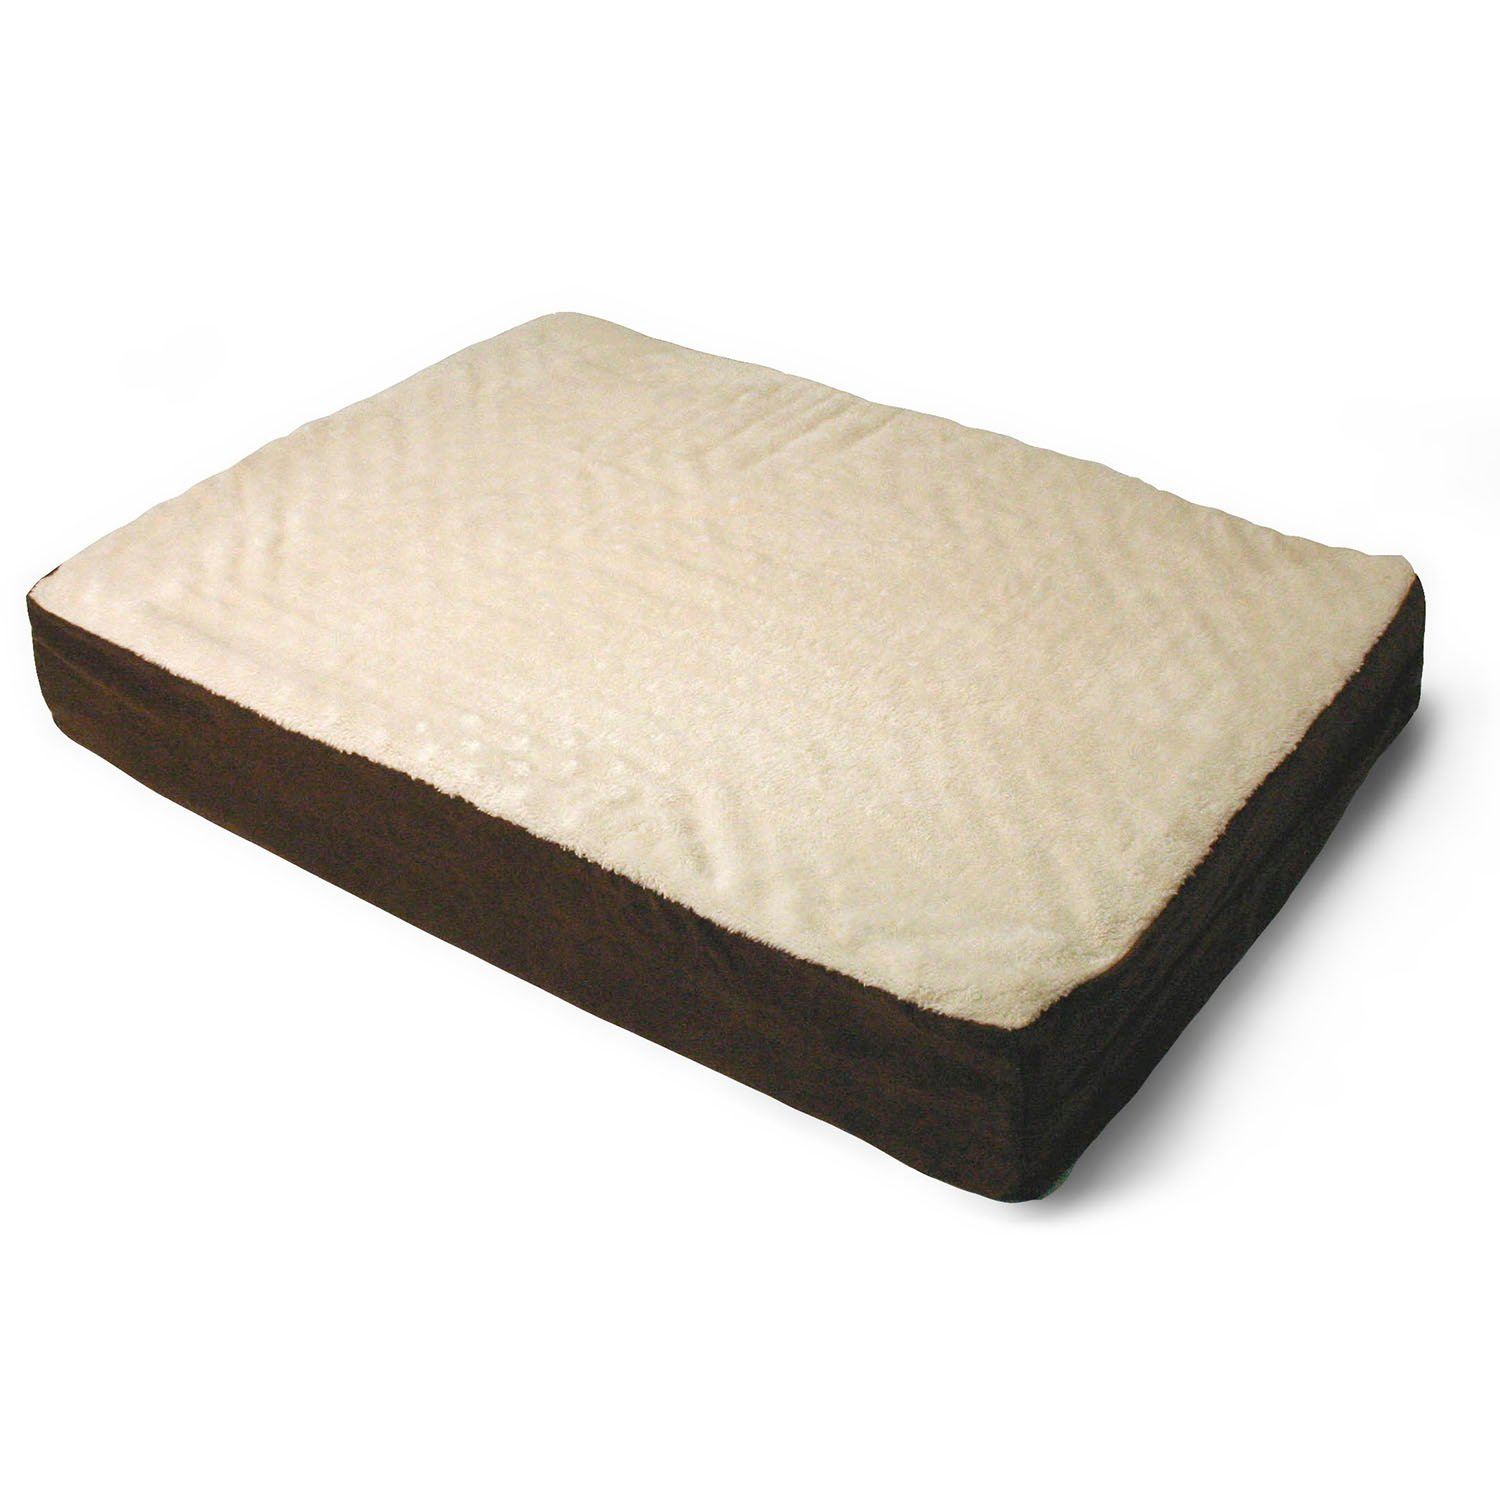 Large Dog Mattress Bed